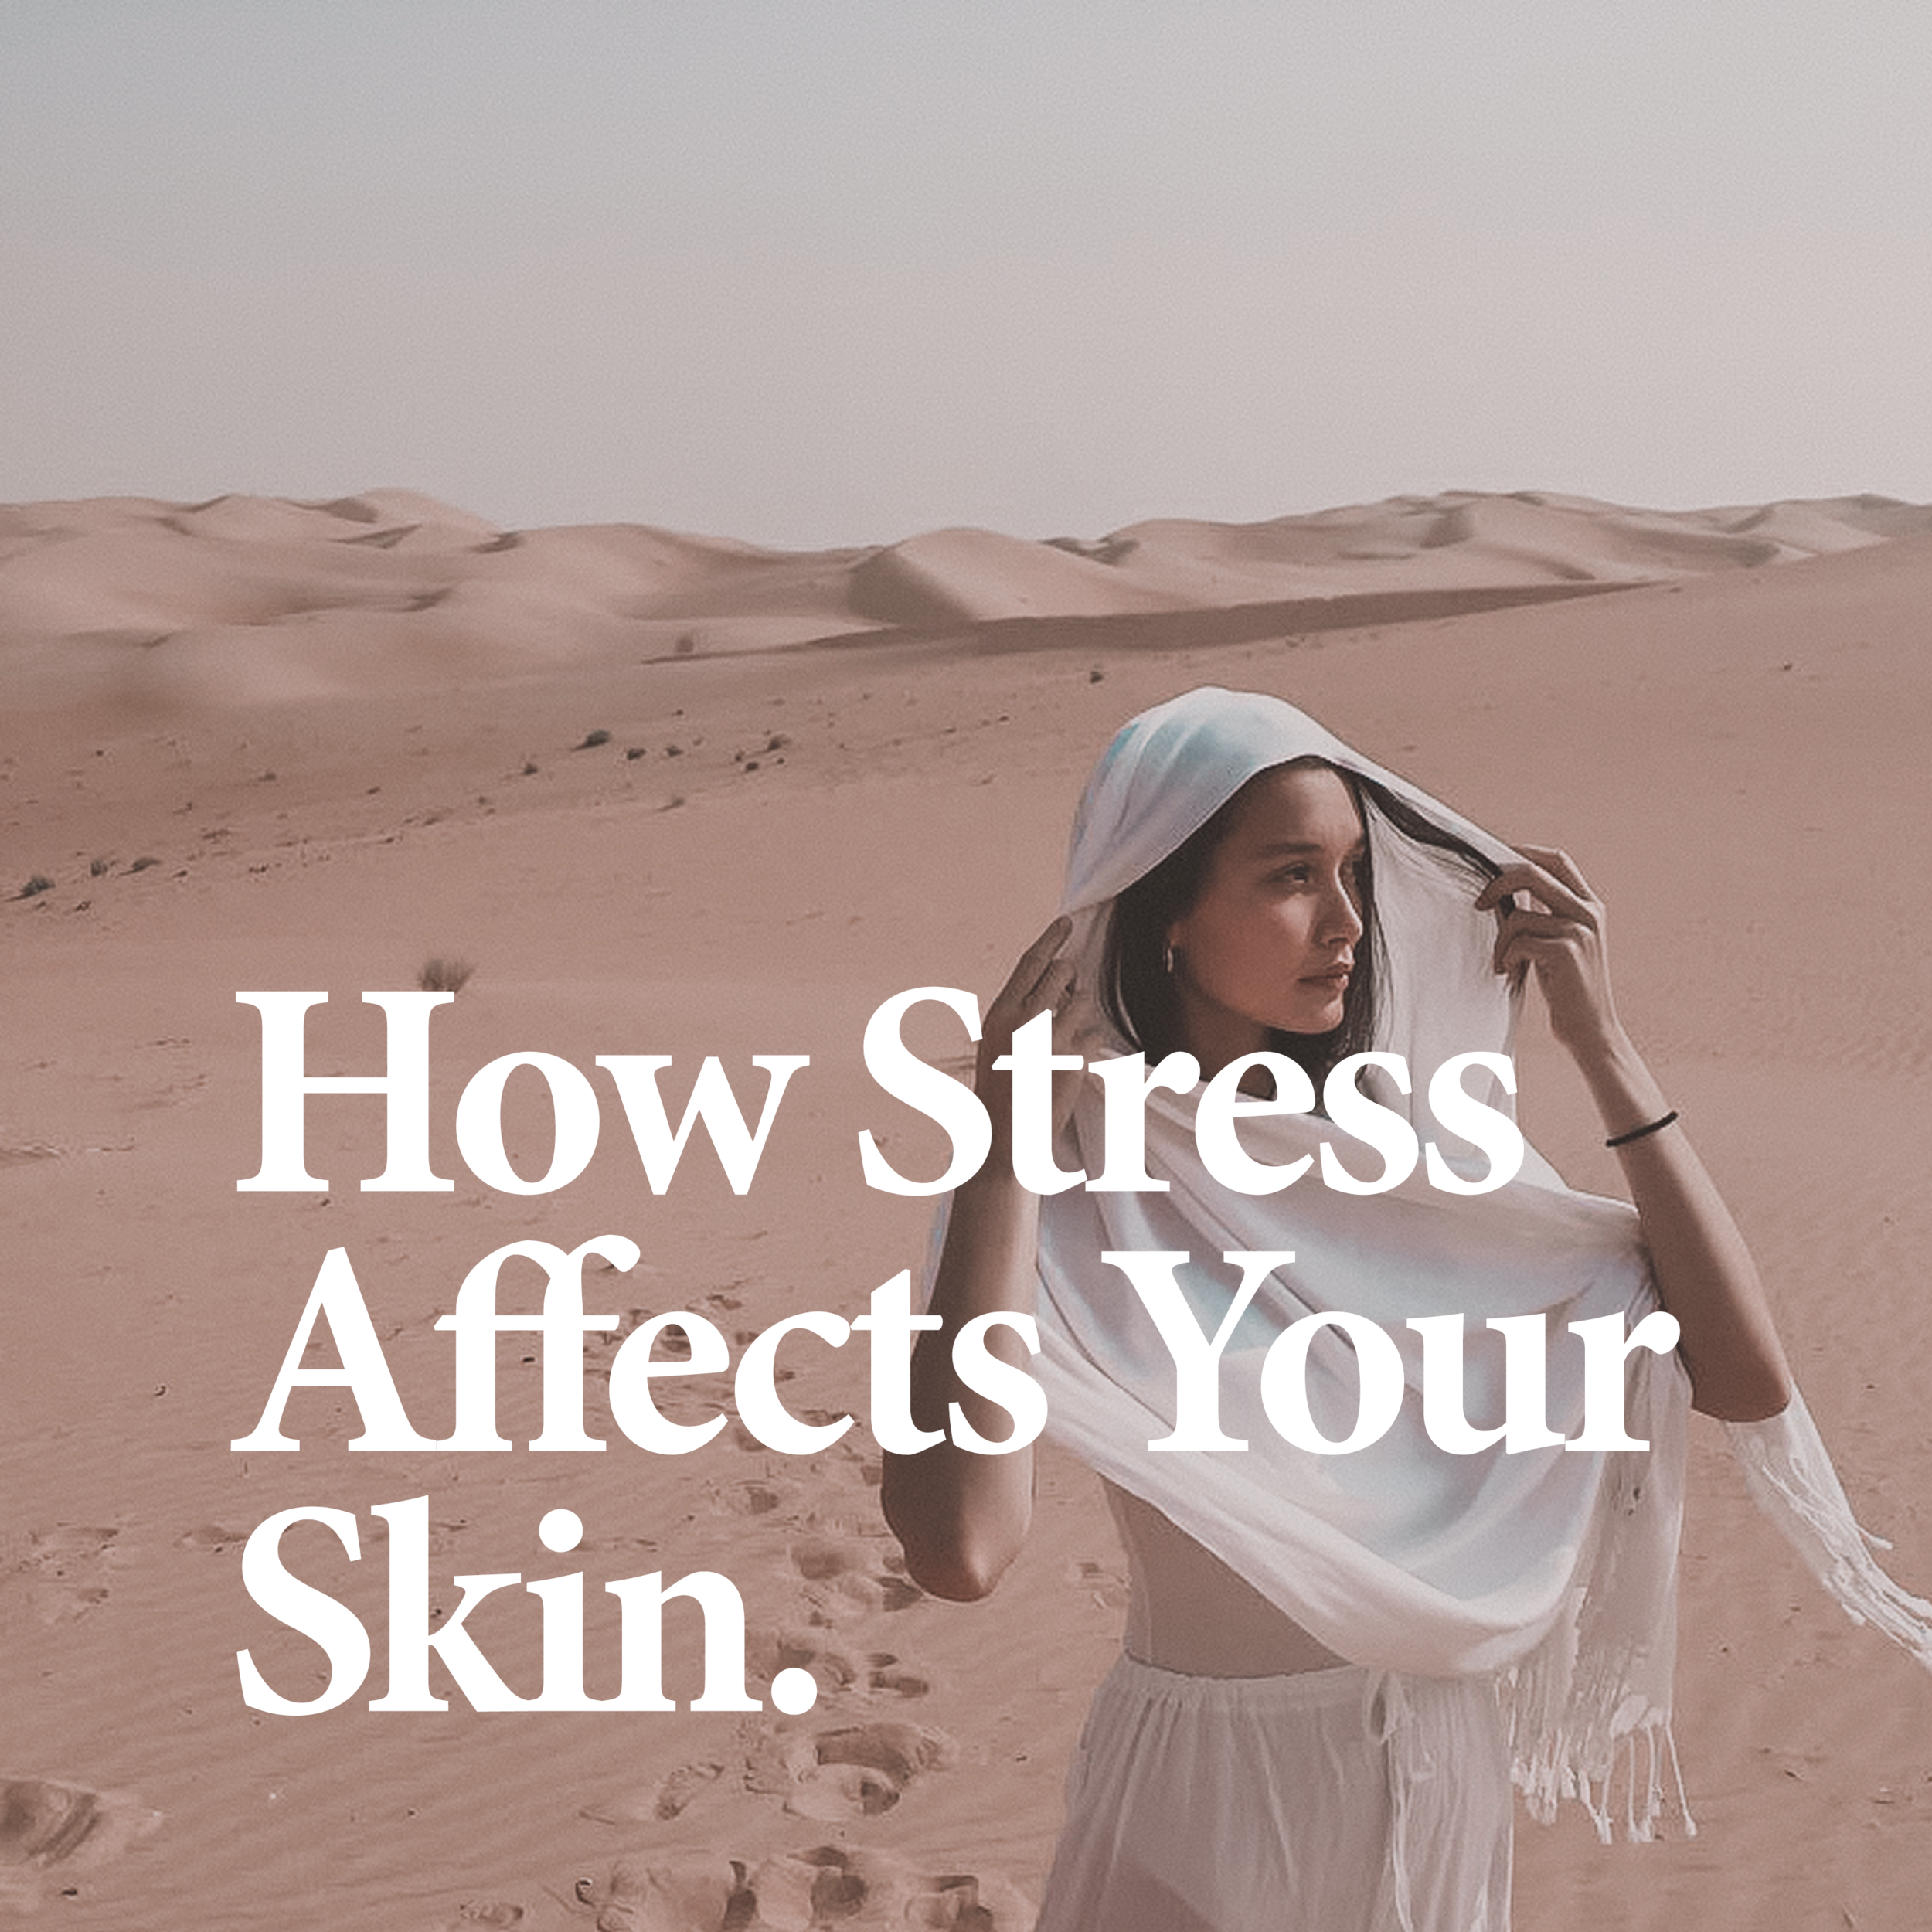 RELATED    Discover the effects of stress on skin, and what to do about it.